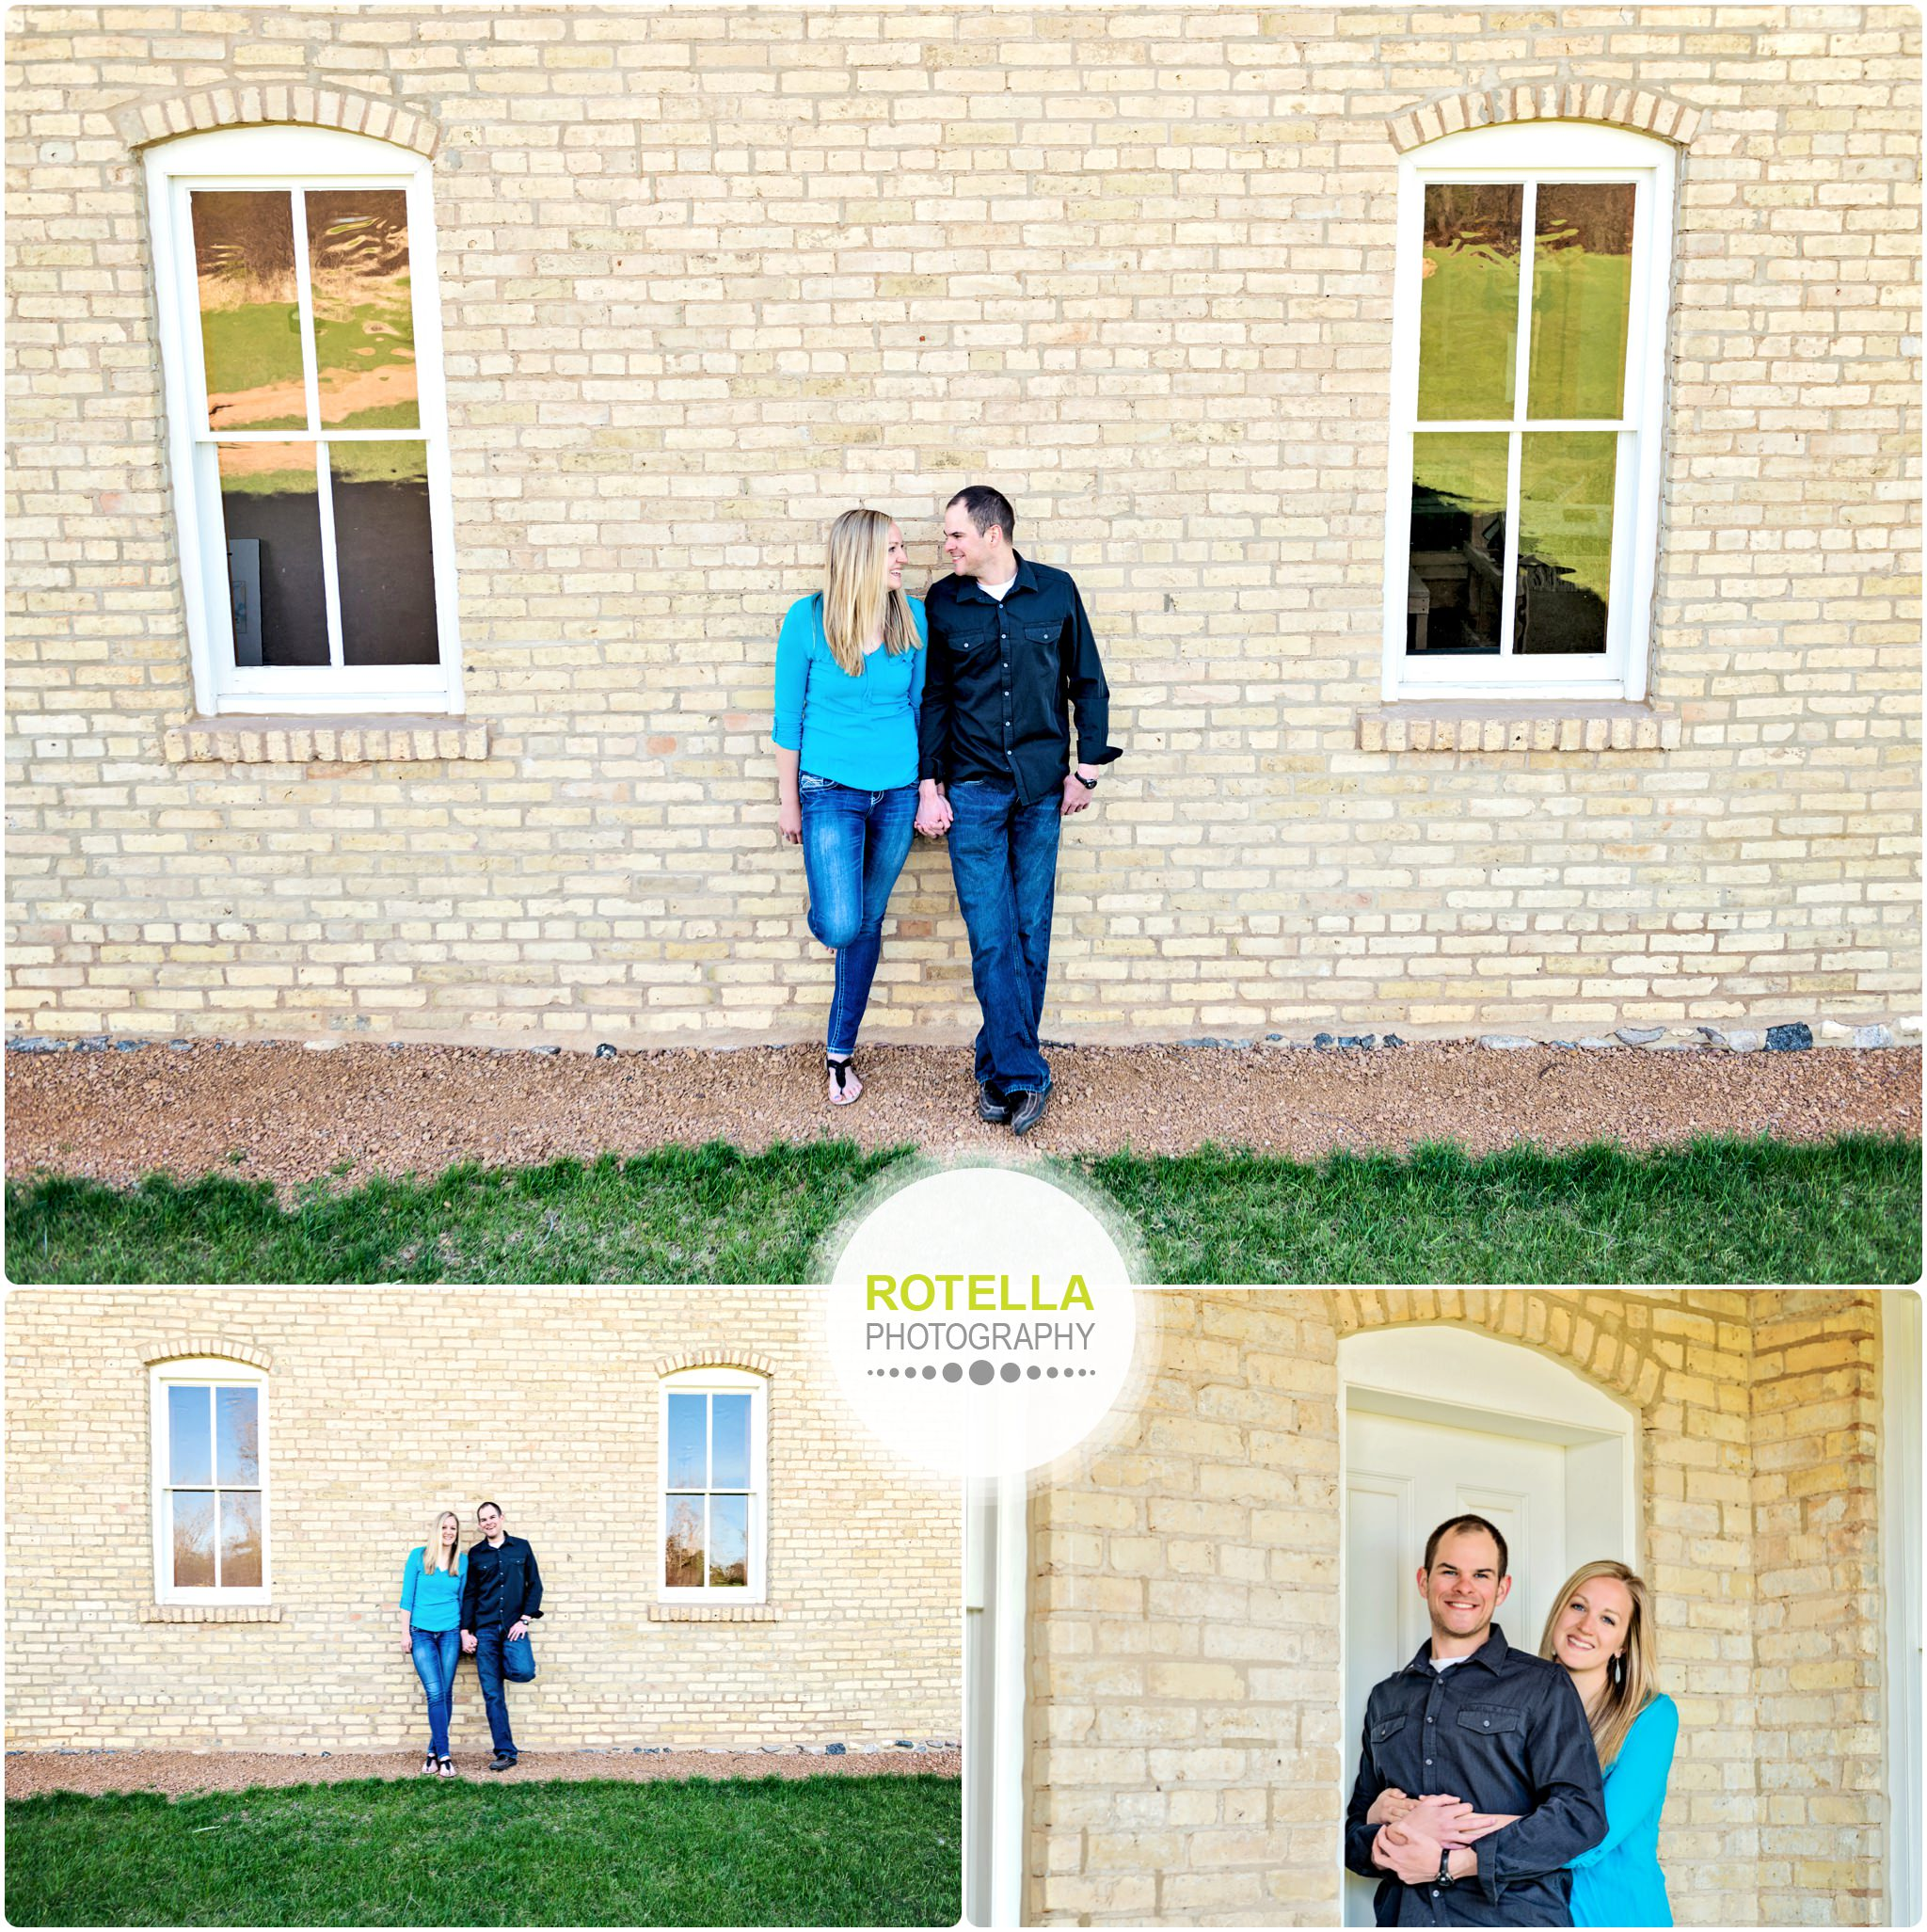 Carver Park Reserve Engagement Session in front of a brick building